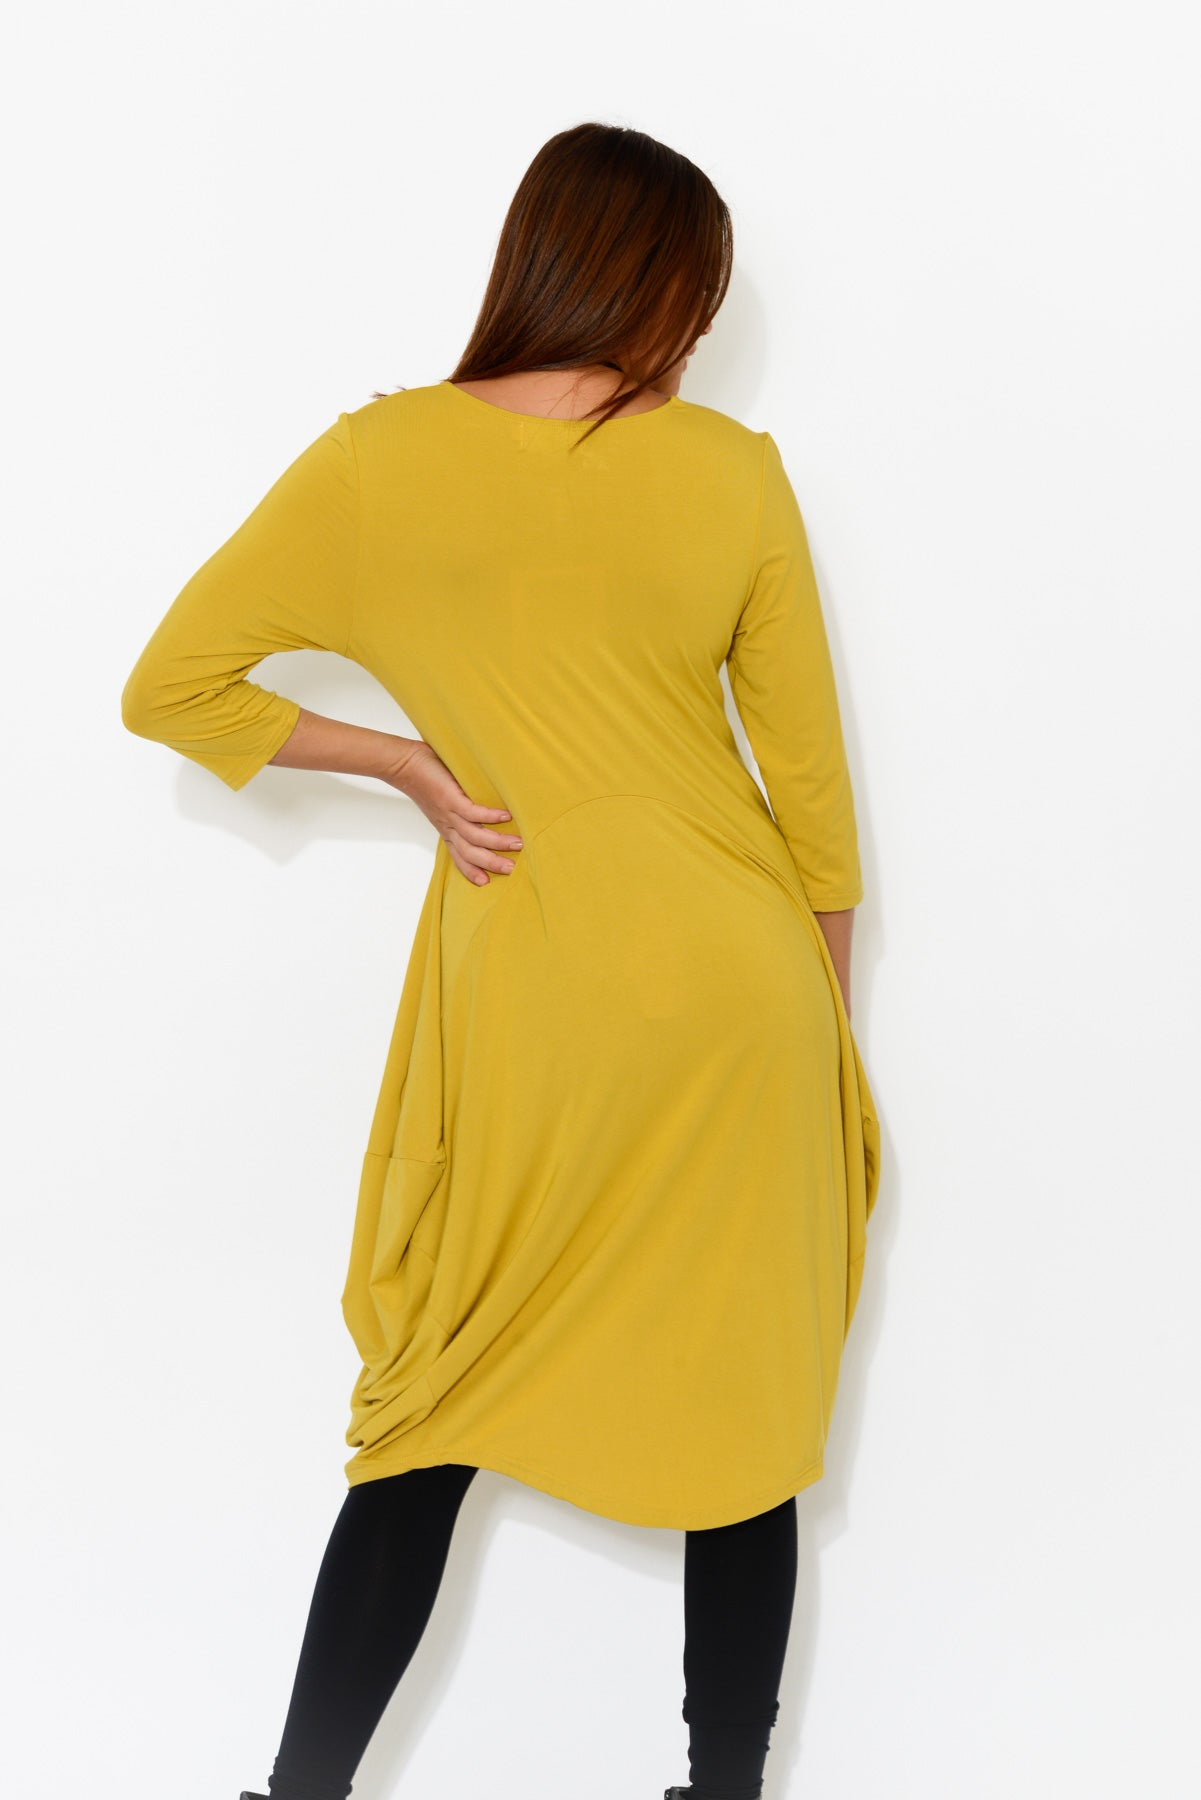 Ayla Yellow Bamboo Dress - Blue Bungalow